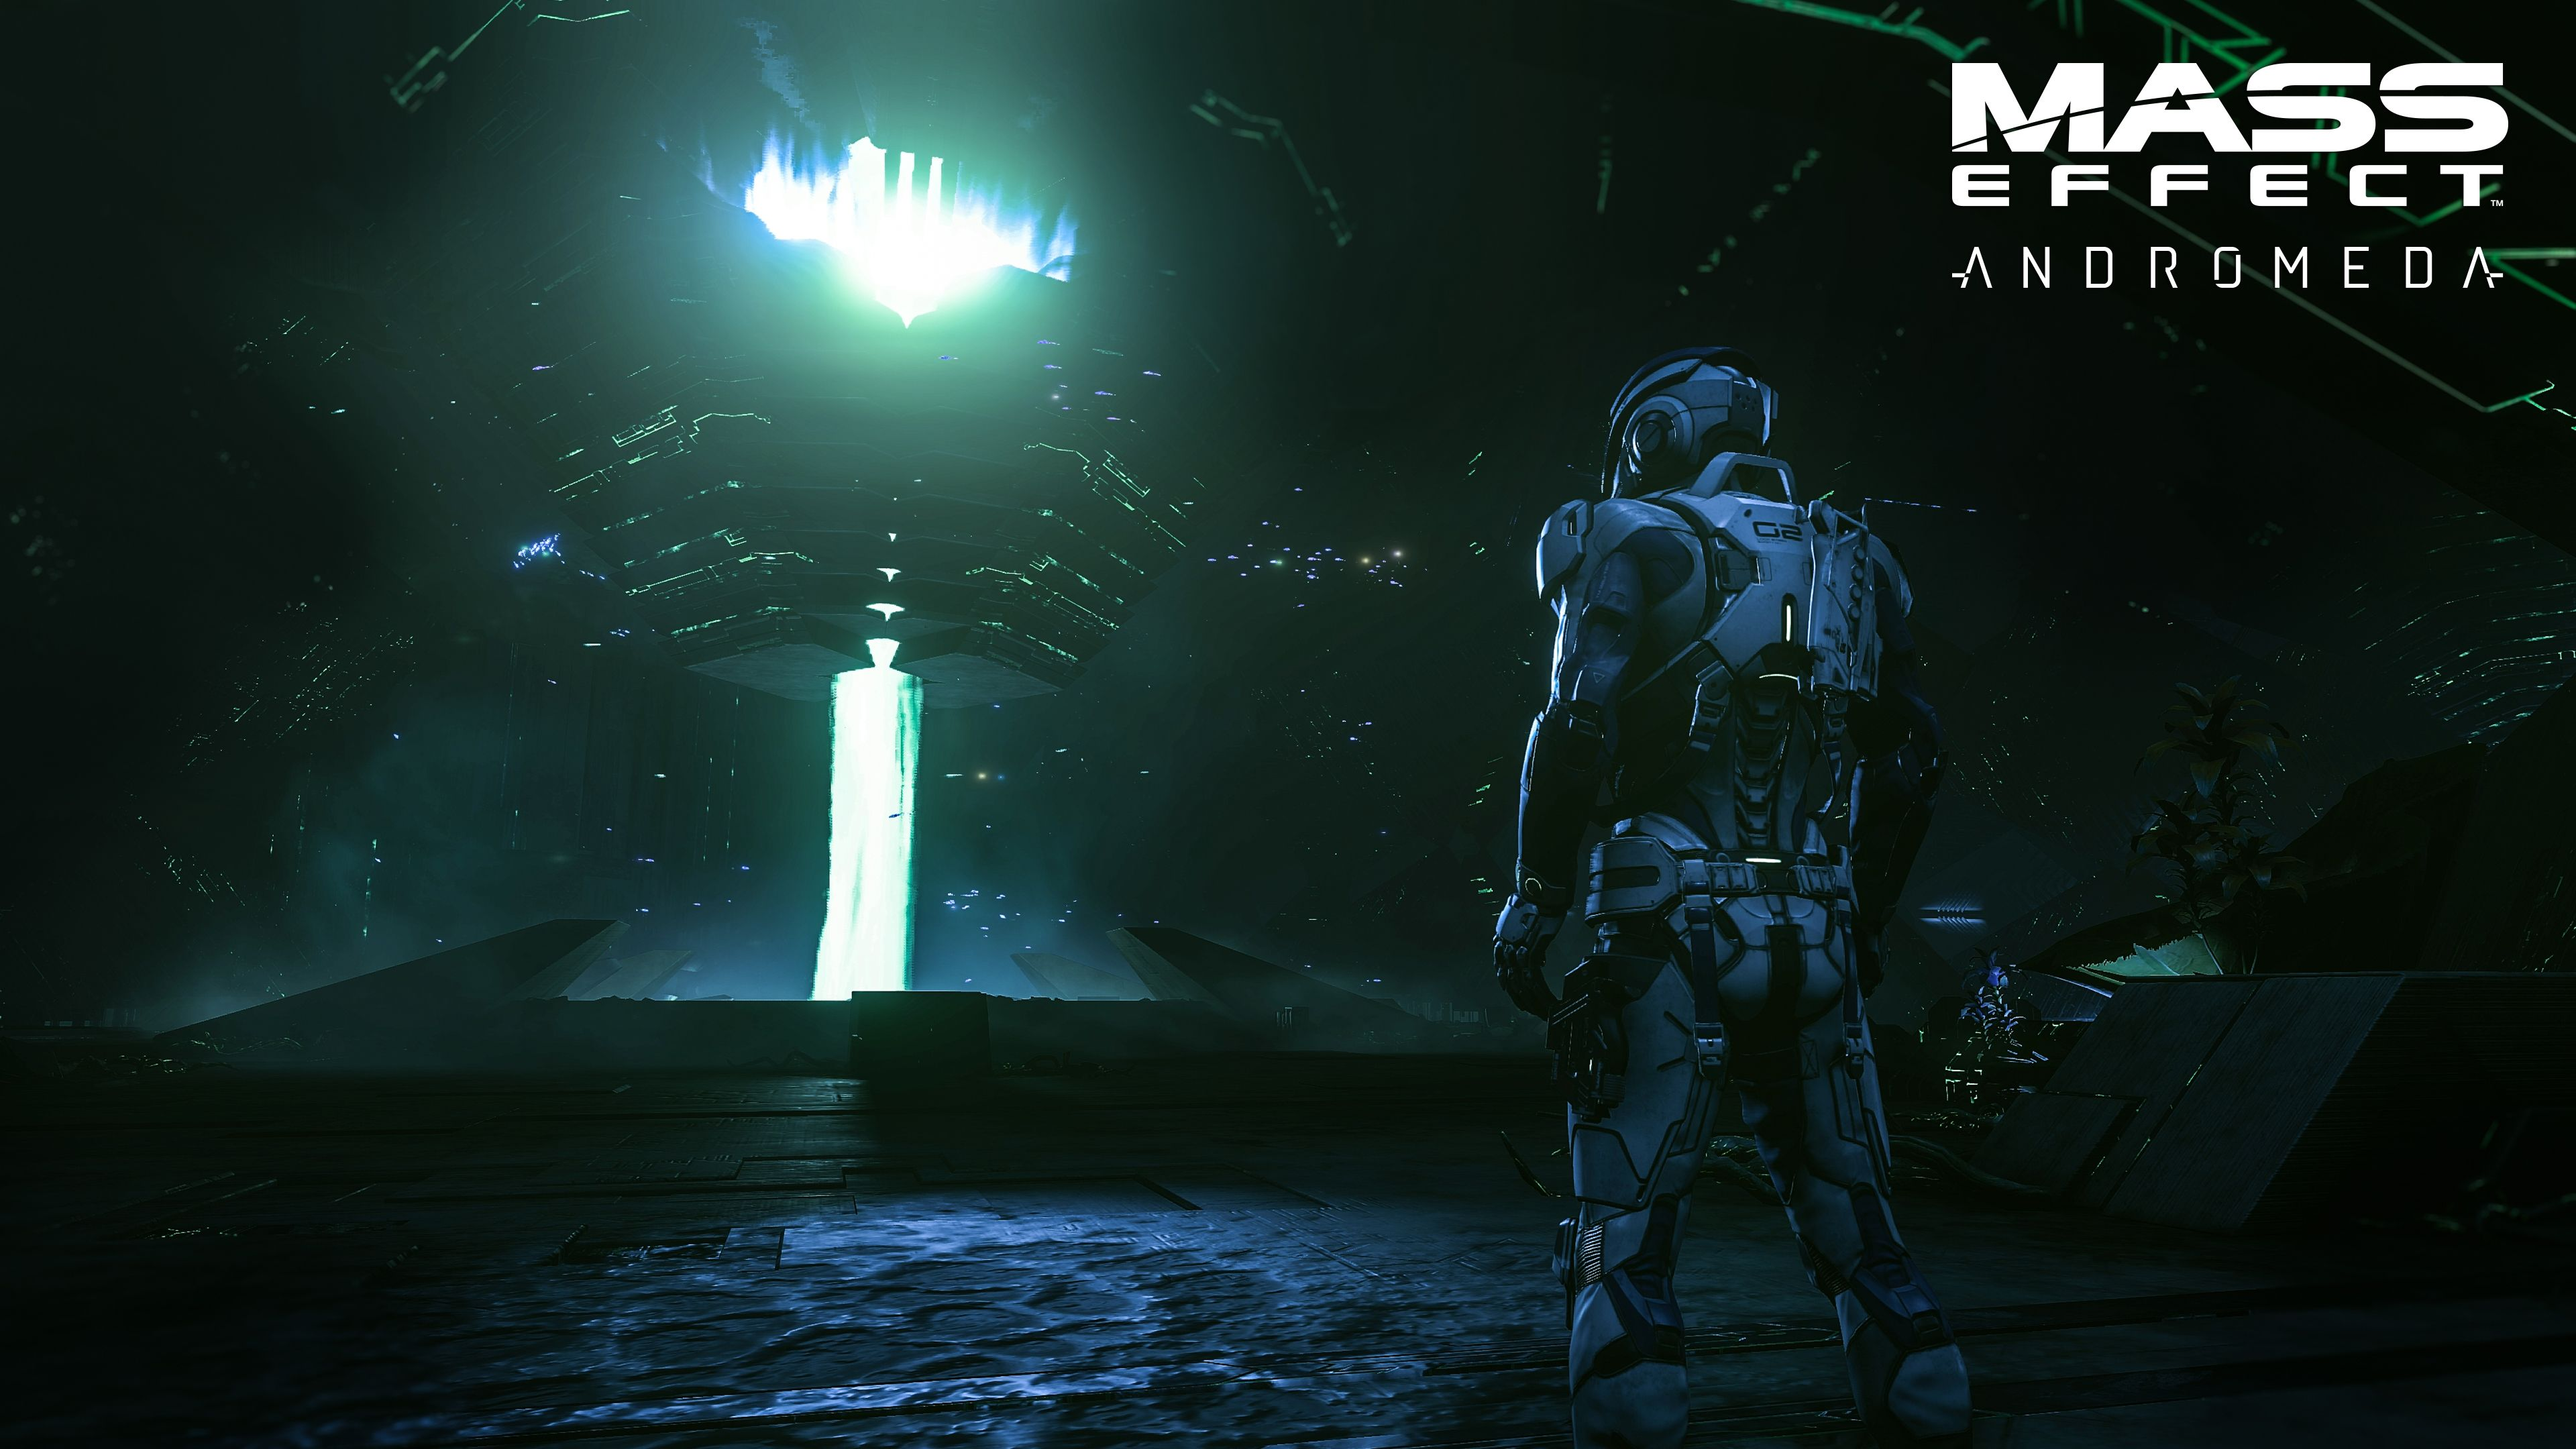 Mass Effect Andromeda (PC) - 3